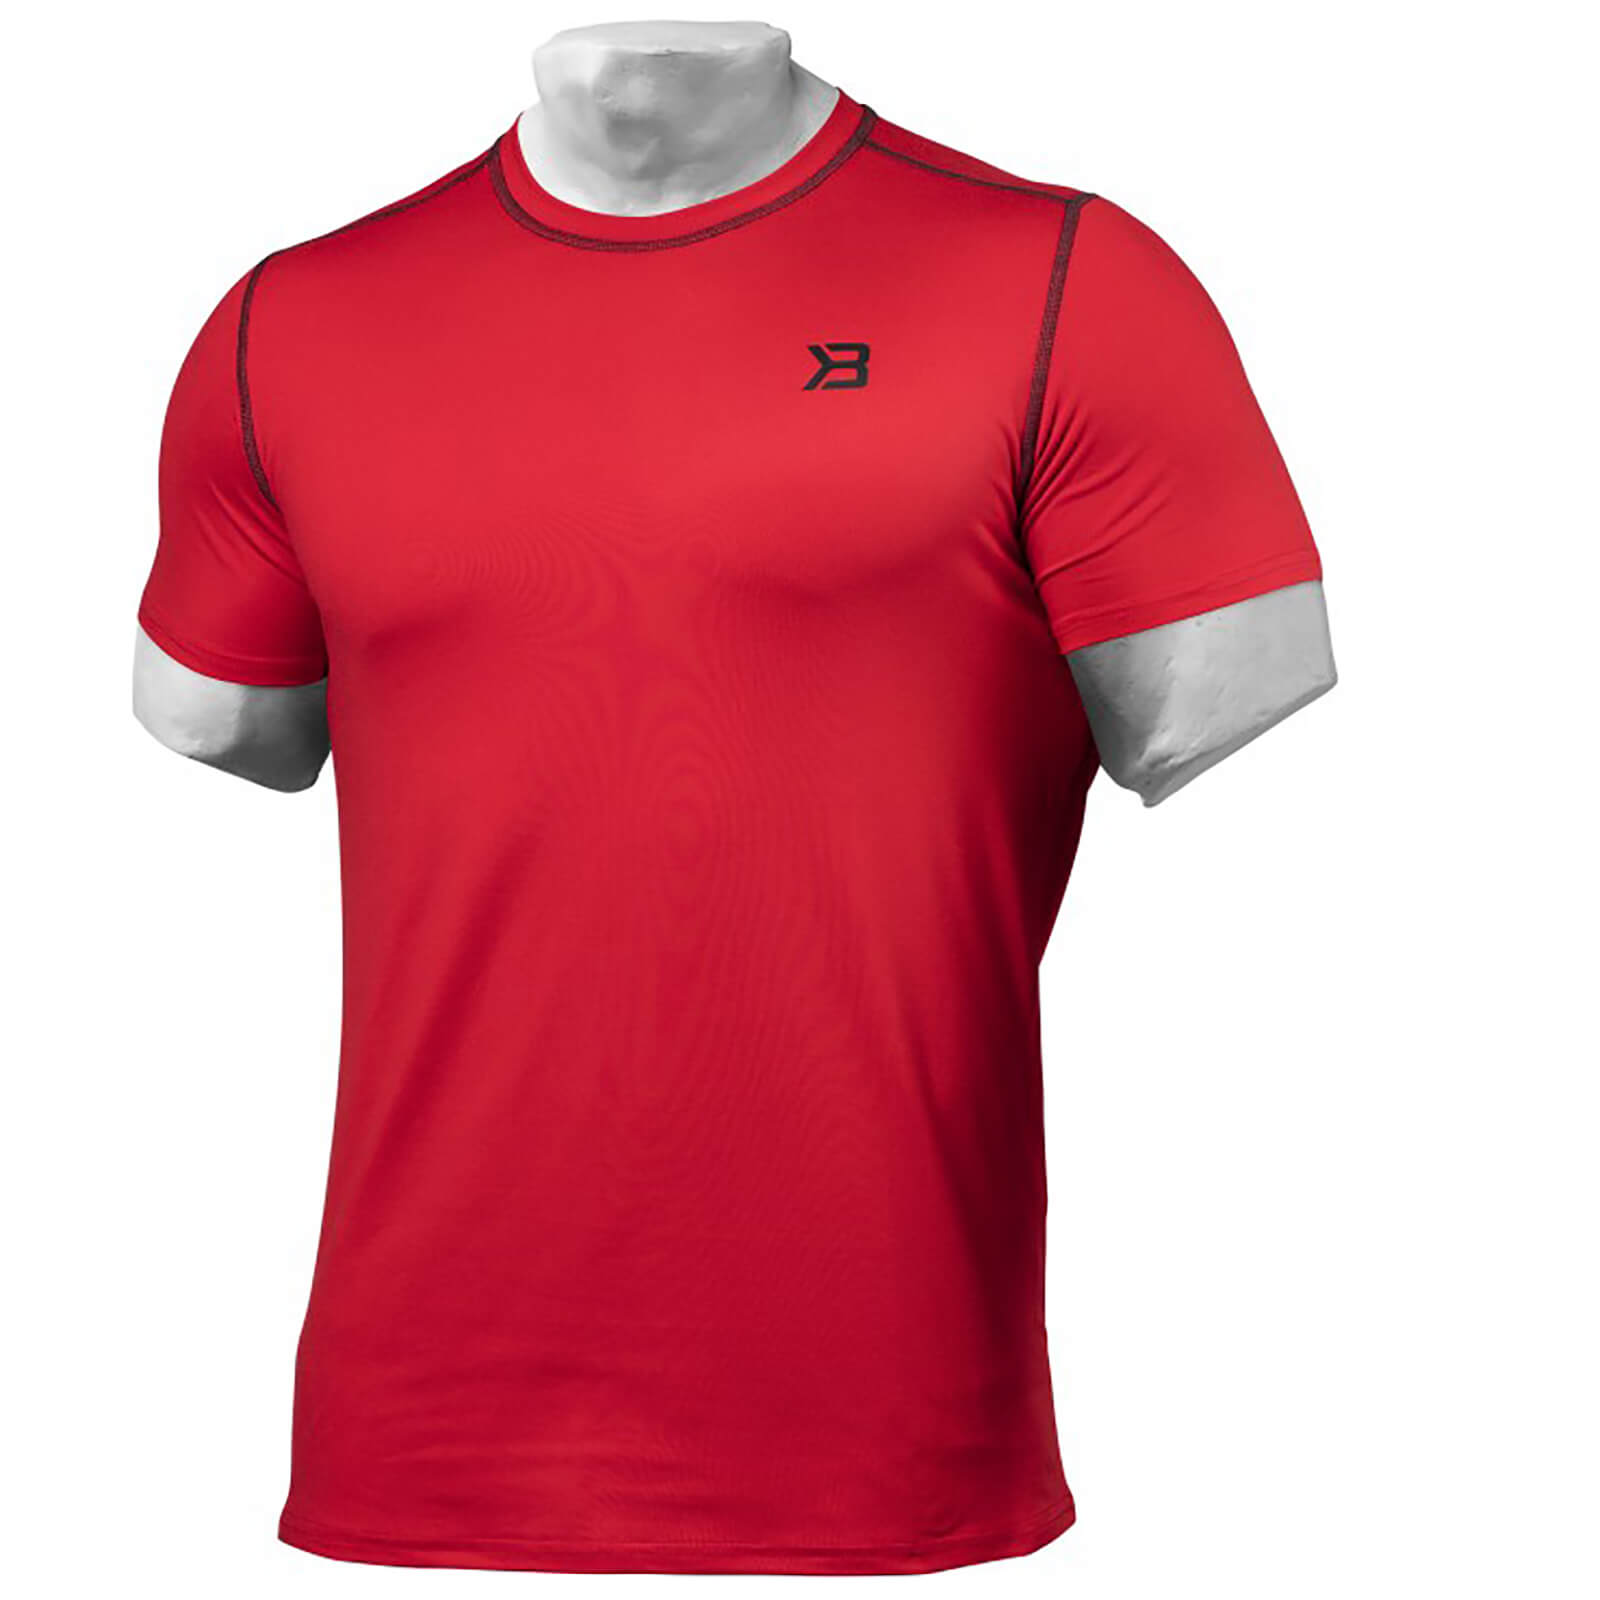 Better Bodies Performance T-Shirt - Bright Red - S